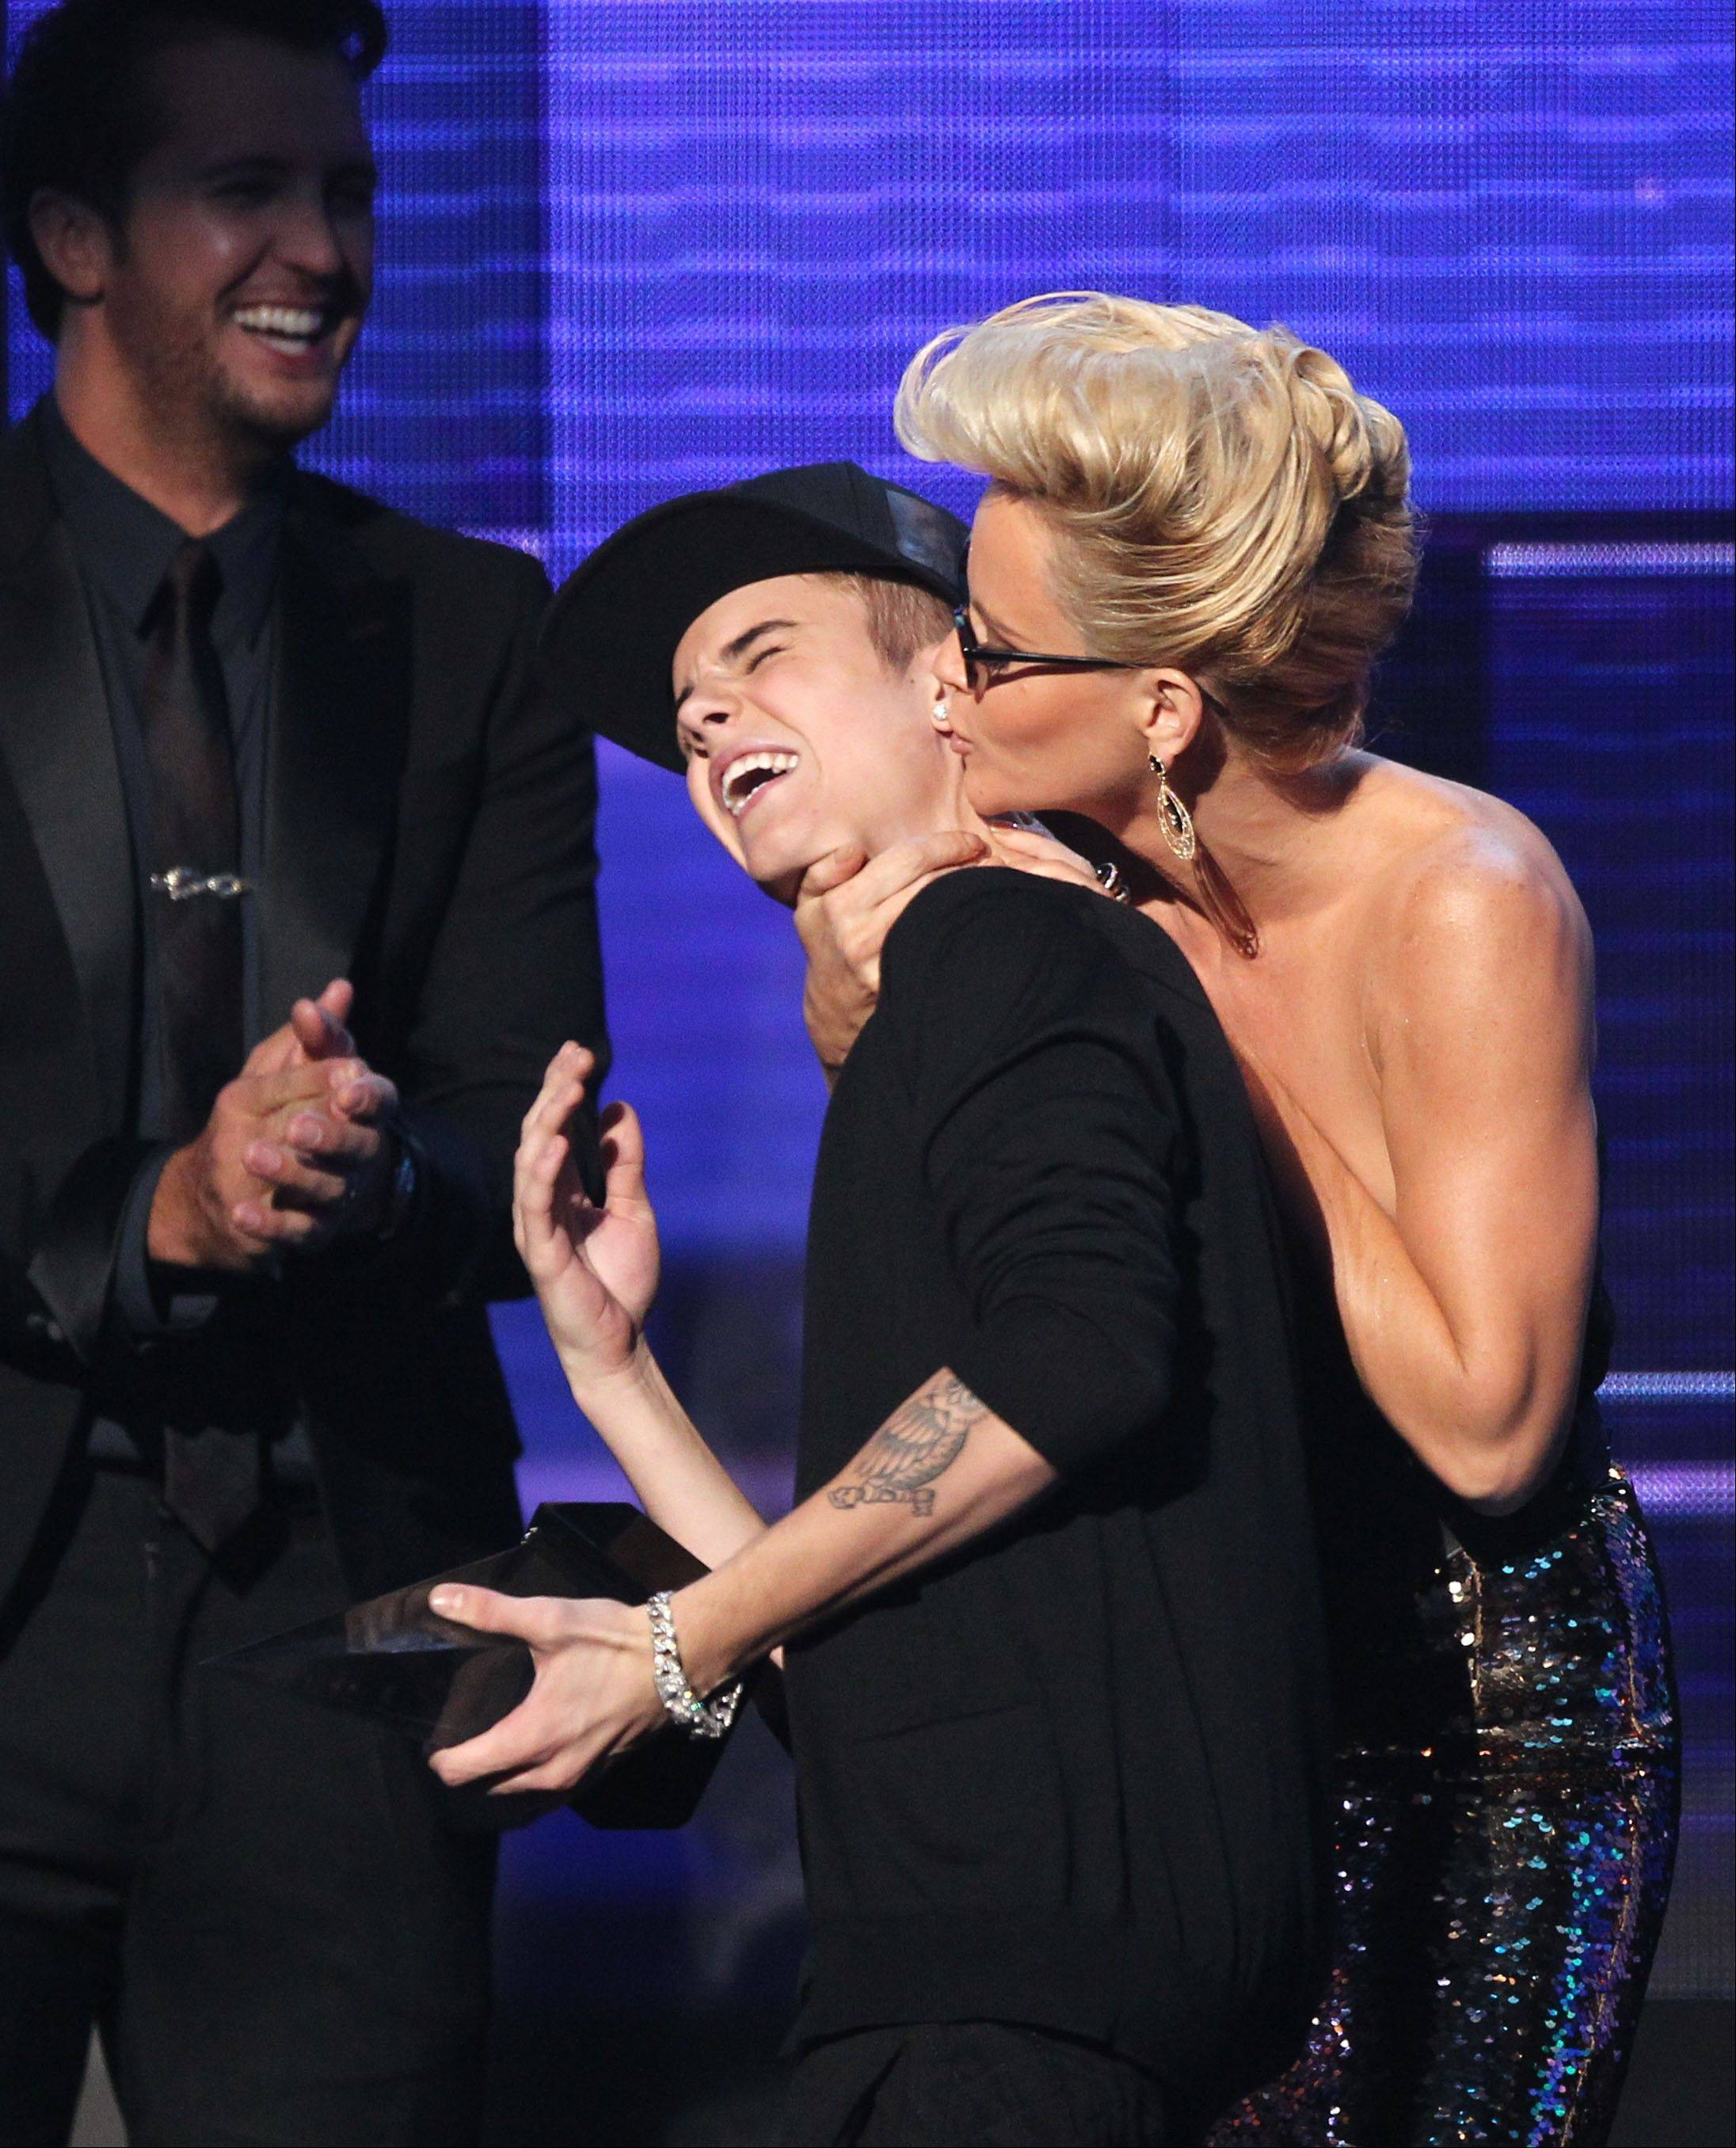 Justin Bieber is smothered in kisses by presenter Jenny McCarthy as he accepts the award for favorite album - pop/rock for �Believe� at the 40th Anniversary American Music Awards Sunday night in Los Angeles.